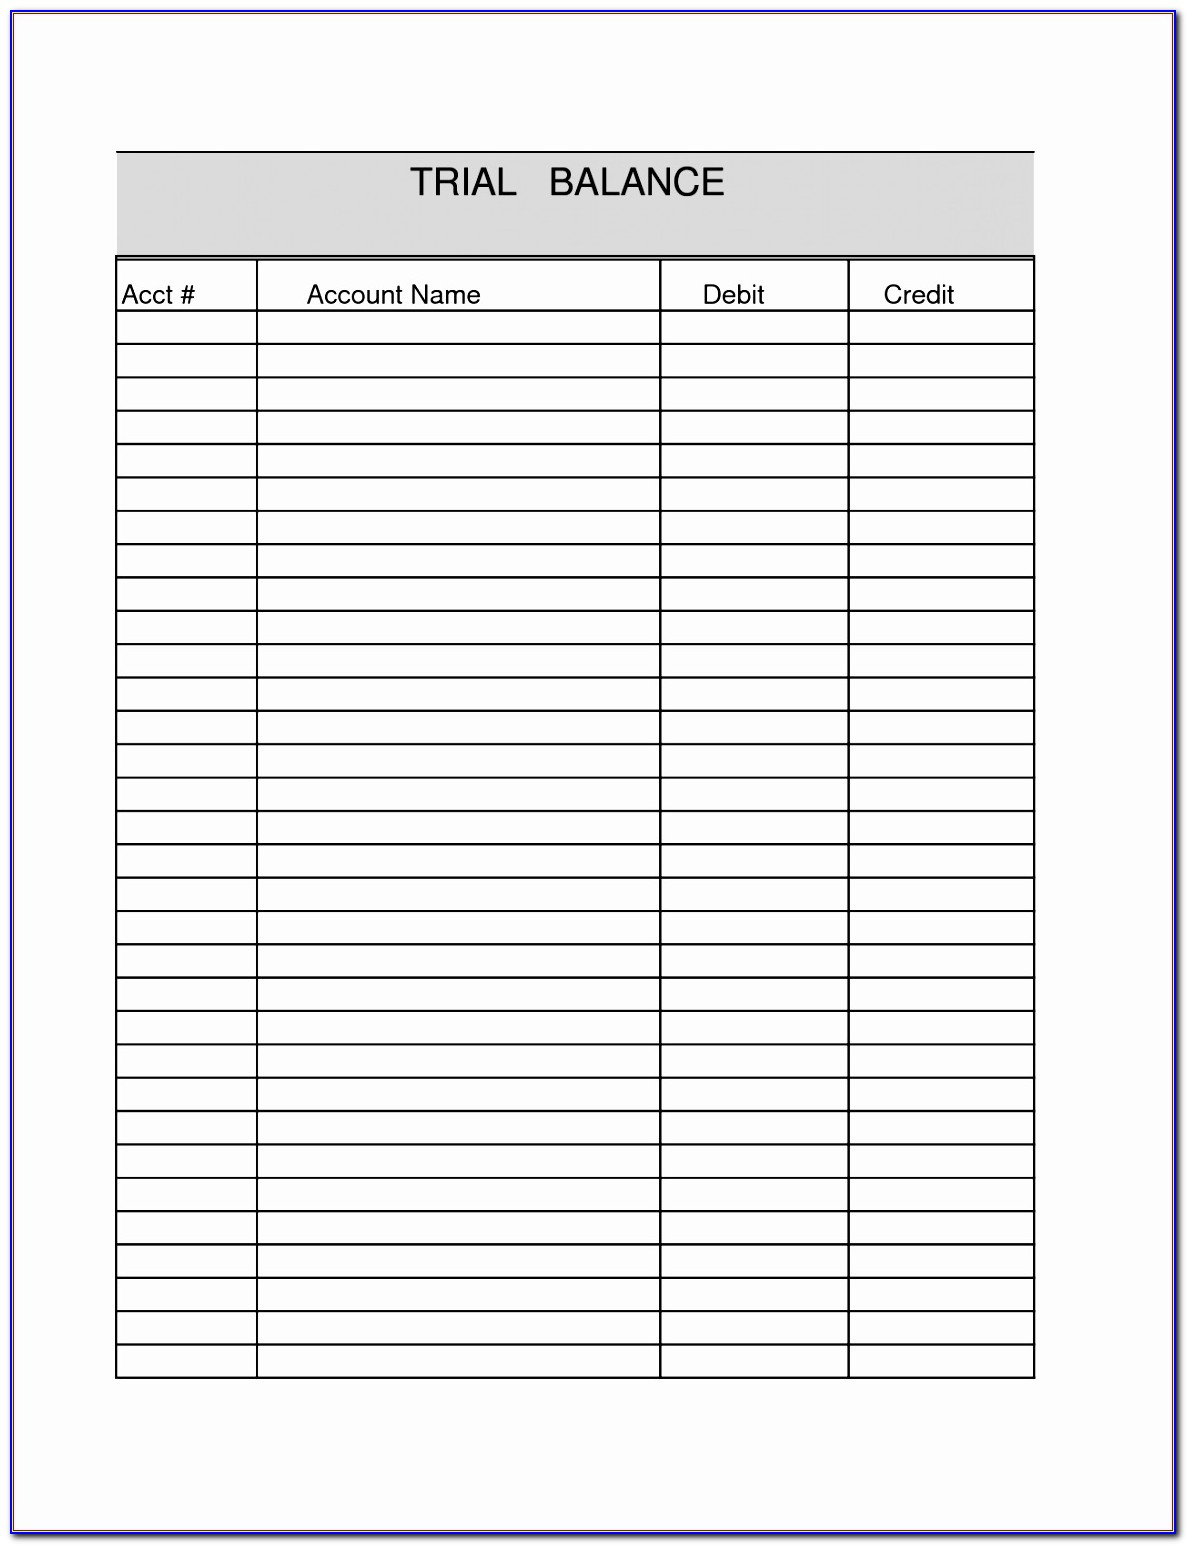 Excel General Ledger Template Udoxl Beautiful Printable Account Ledger Fax Cover Sheet Free Template